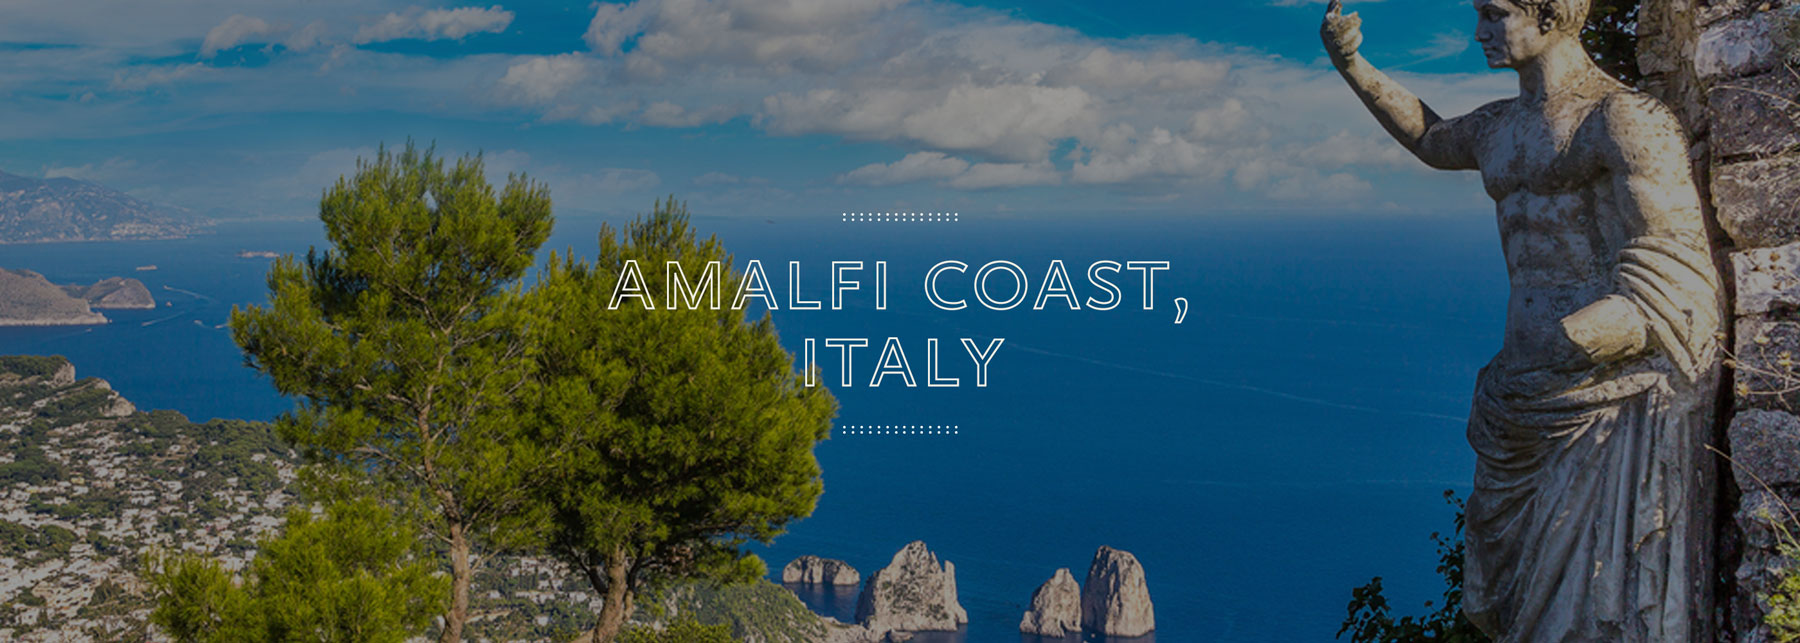 Culinary Tour to the Amalfi Coast and Island of Capri, Italy